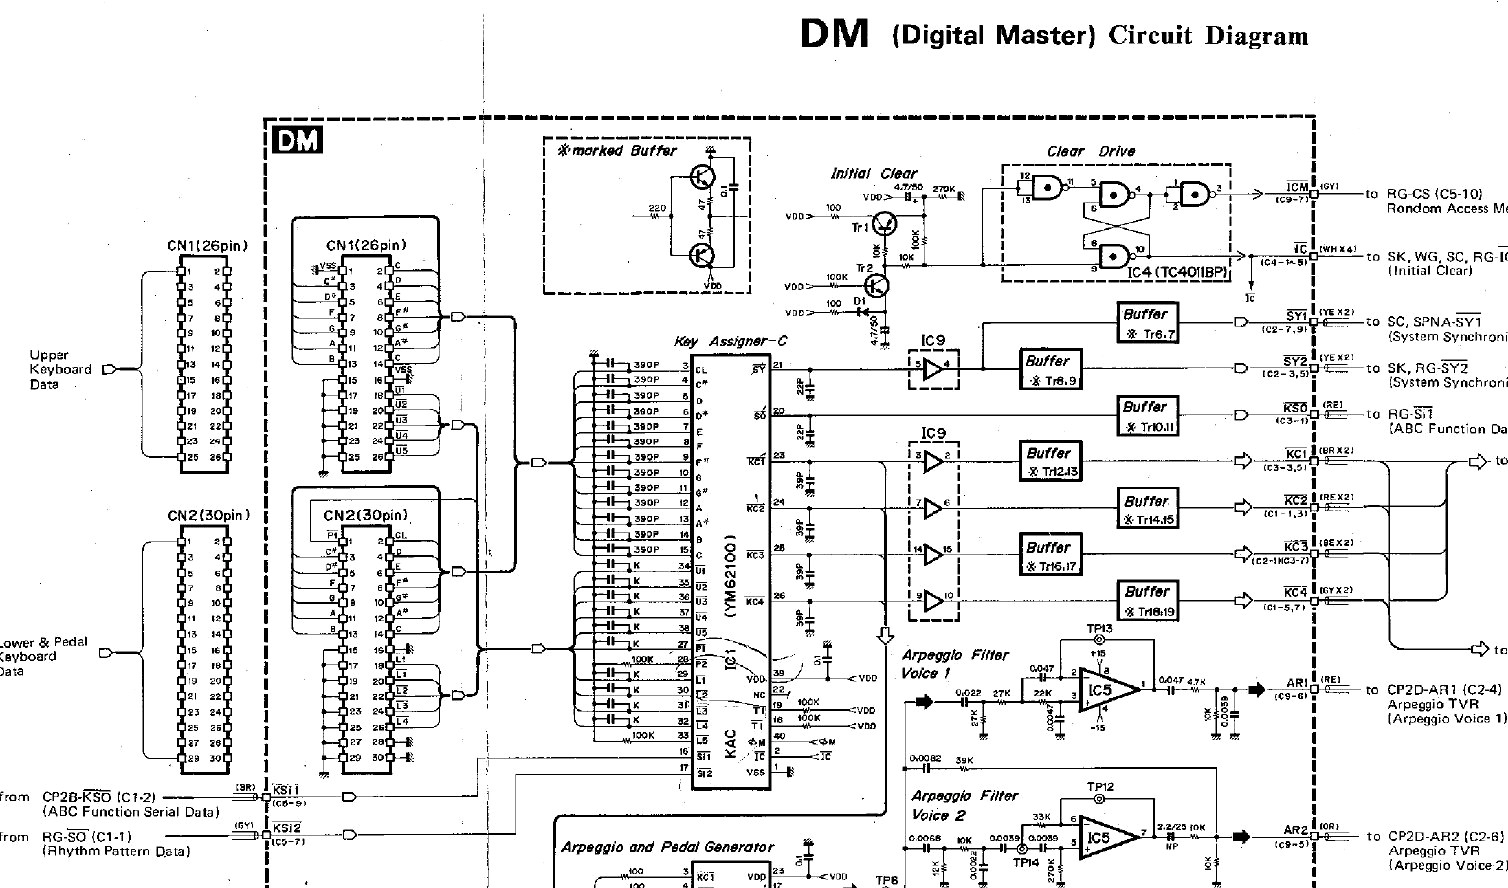 D500 Fasco Motor Wiring Diagram